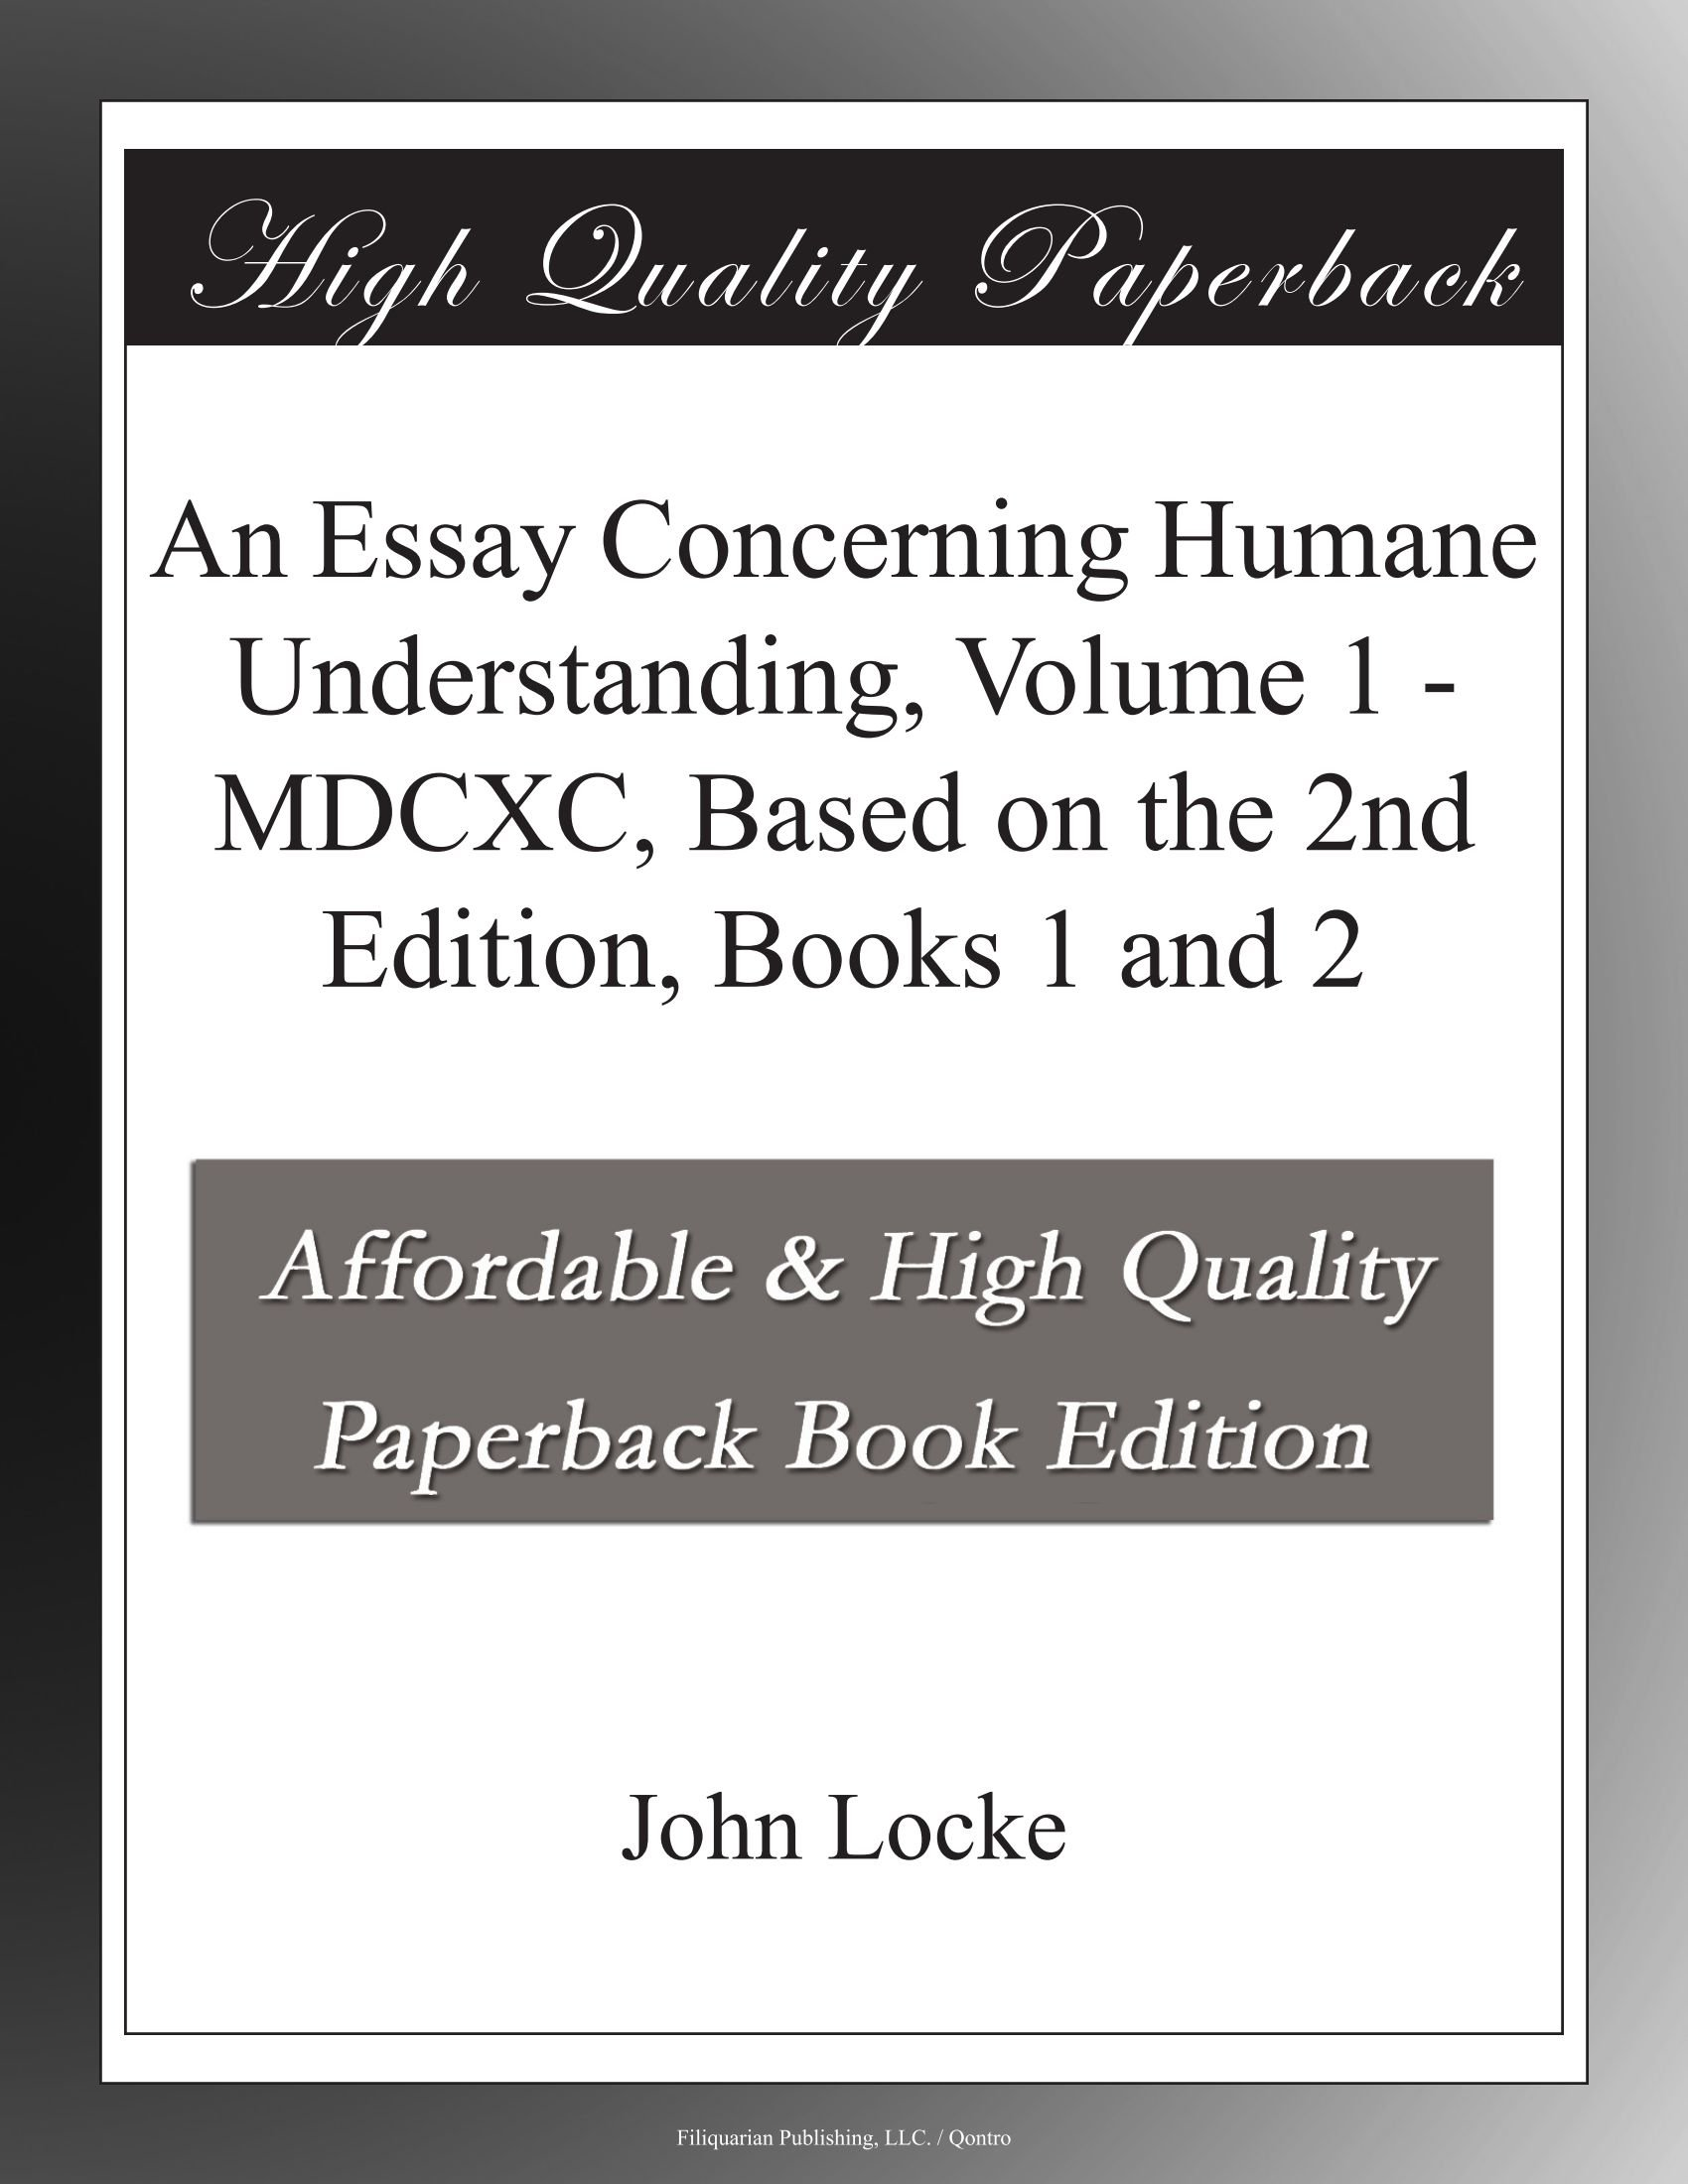 An Essay Concerning Humane Understanding, Volume 1 - MDCXC, Based on the 2nd Edition, Books 1 and 2 pdf